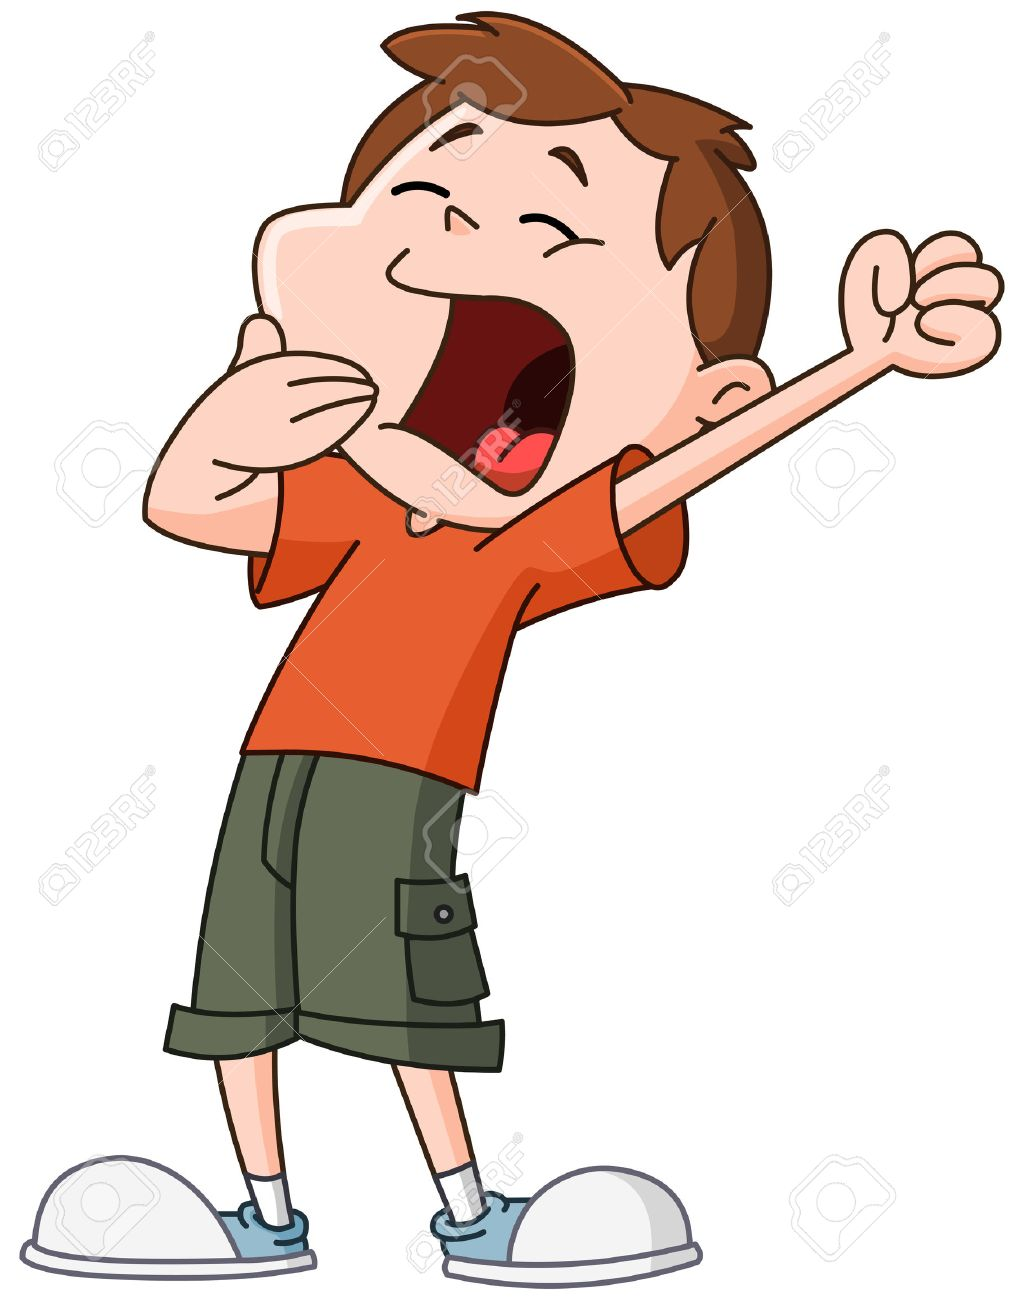 Kid Yawning And Stretching Royalty Free Cliparts, Vectors, And ... for Clipart Yawn  113lpg